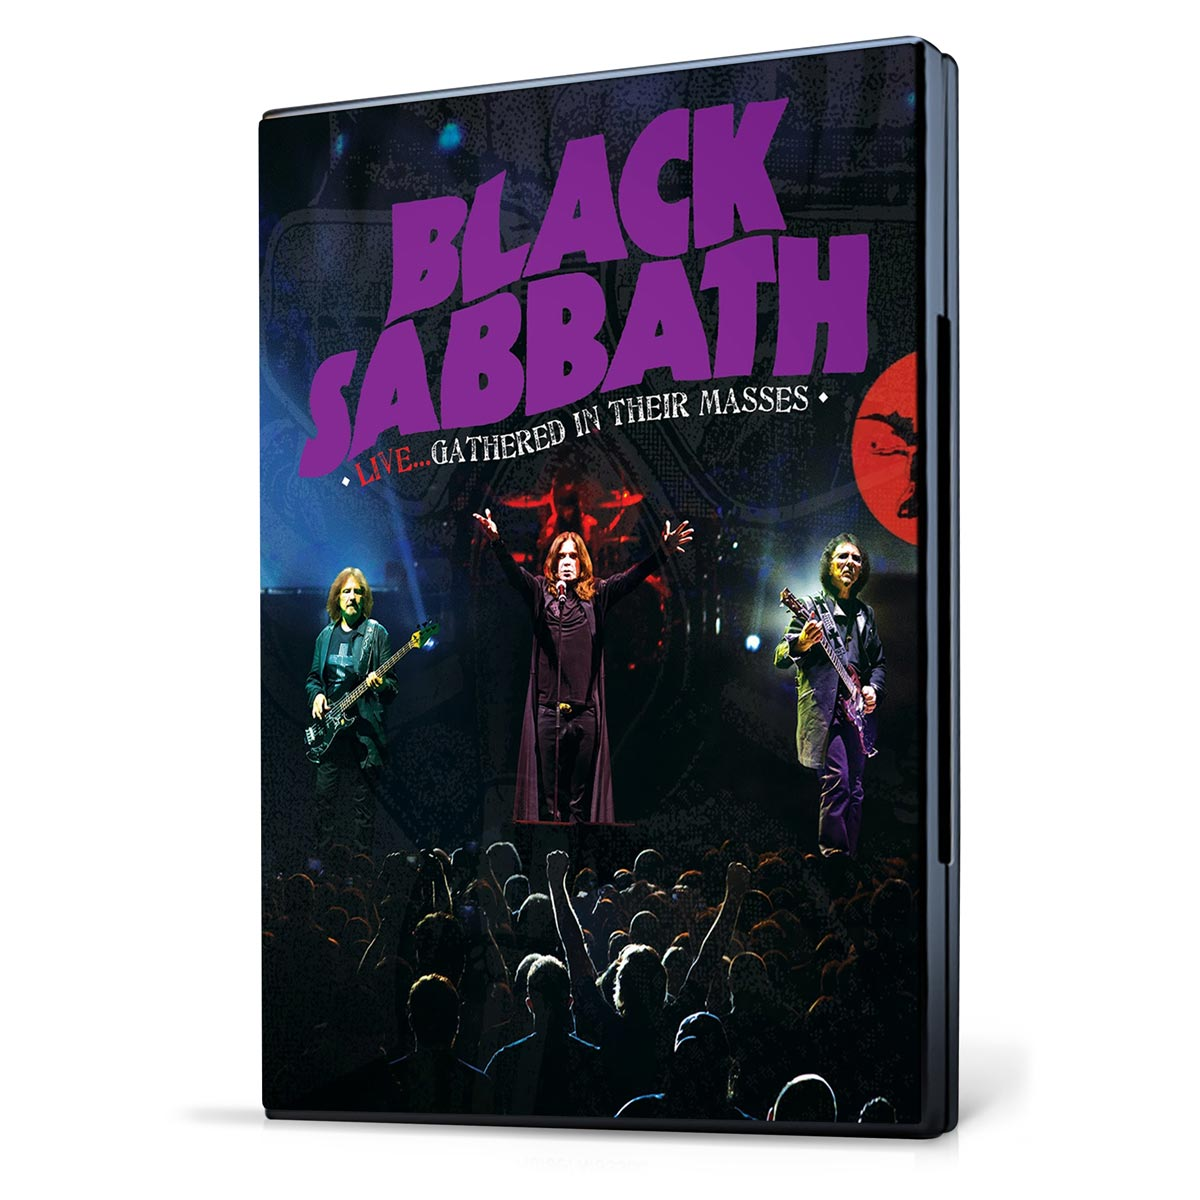 DVD Black Sabbath Live... Gathered In Their Masses